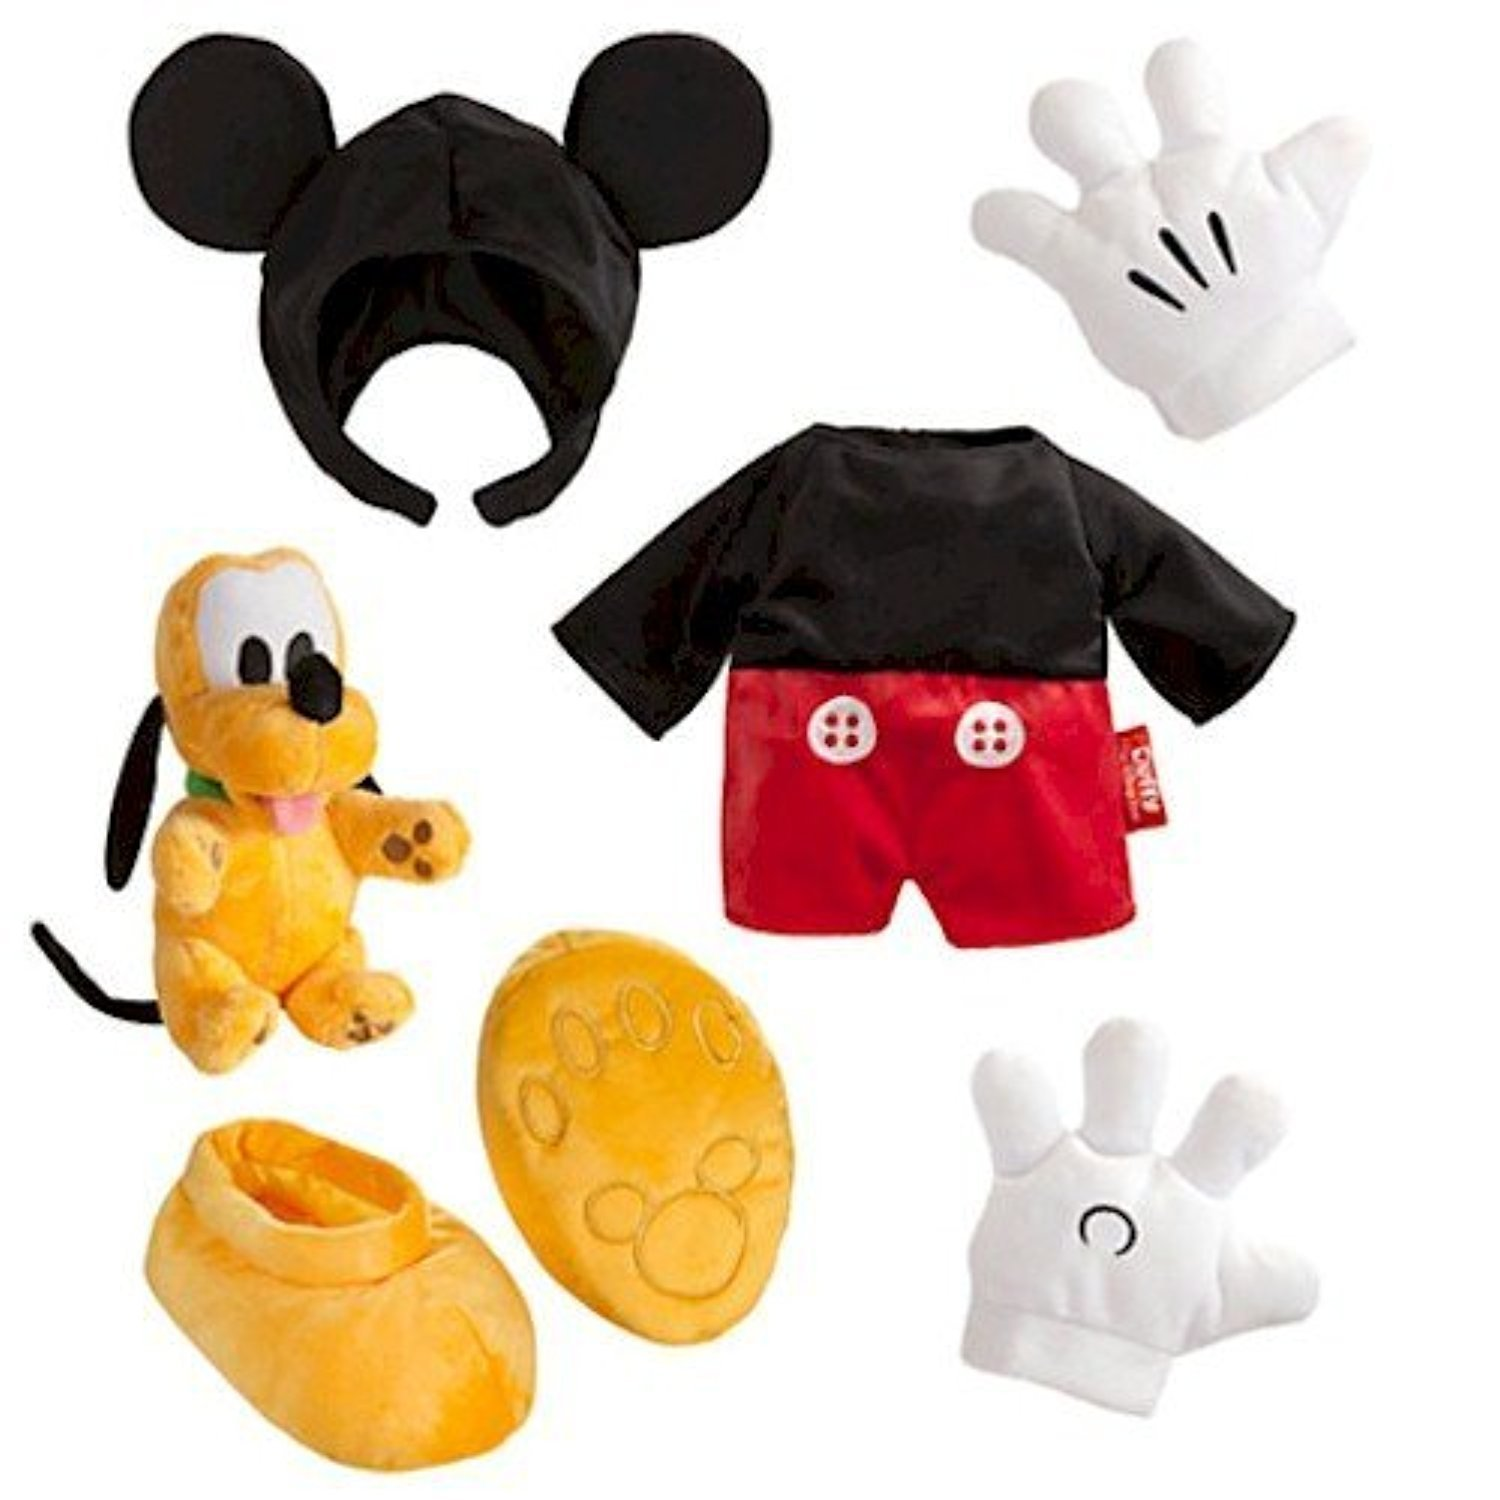 ◎送料込み◎ Duffy the Disney Bear Mickey Mouse Costume